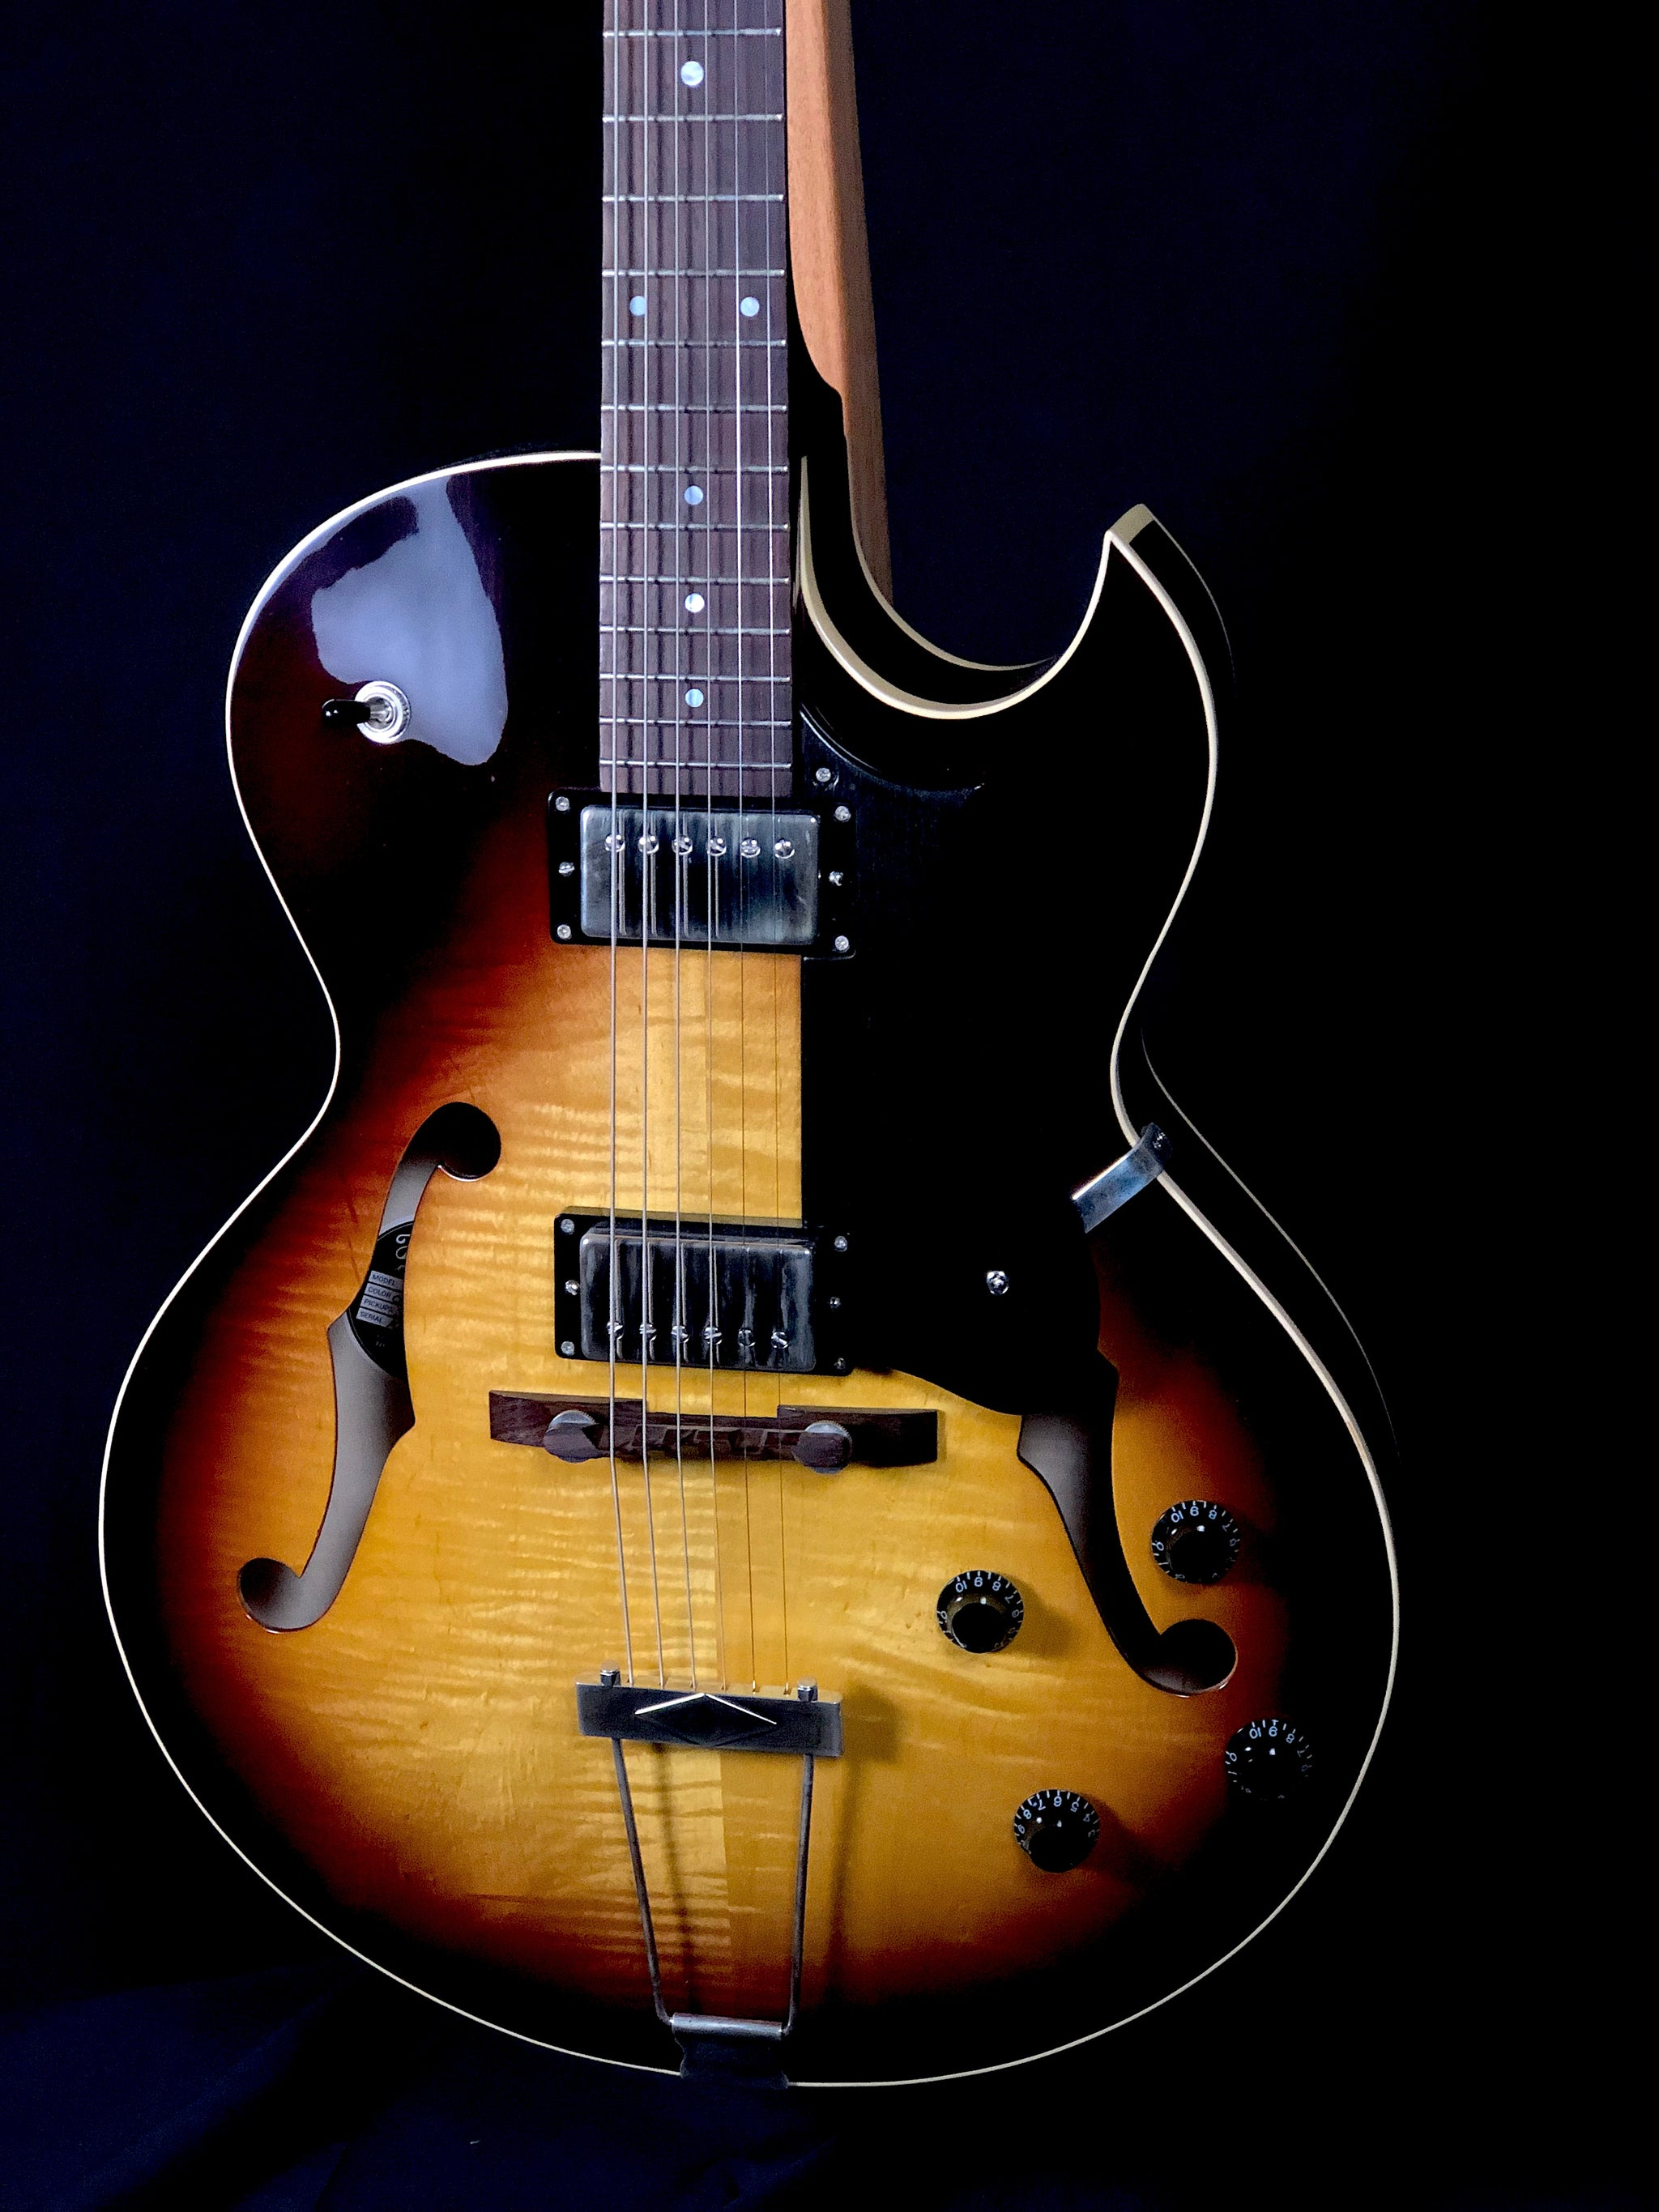 H575 Original Sunburst